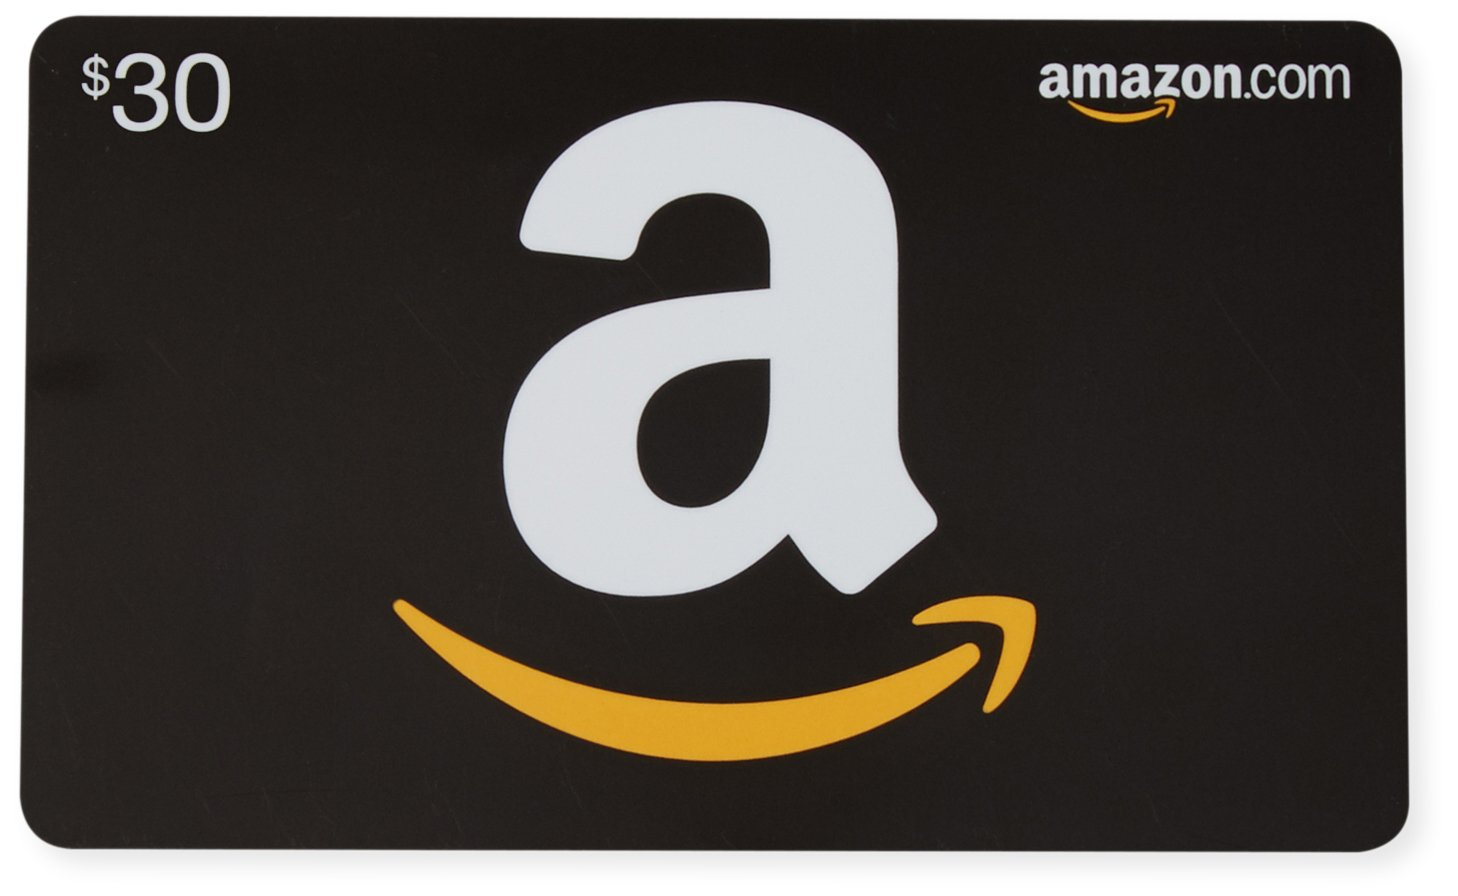 Home Design Outdoor App Galleon Amazon Com 30 Gift Card In A Greeting Card